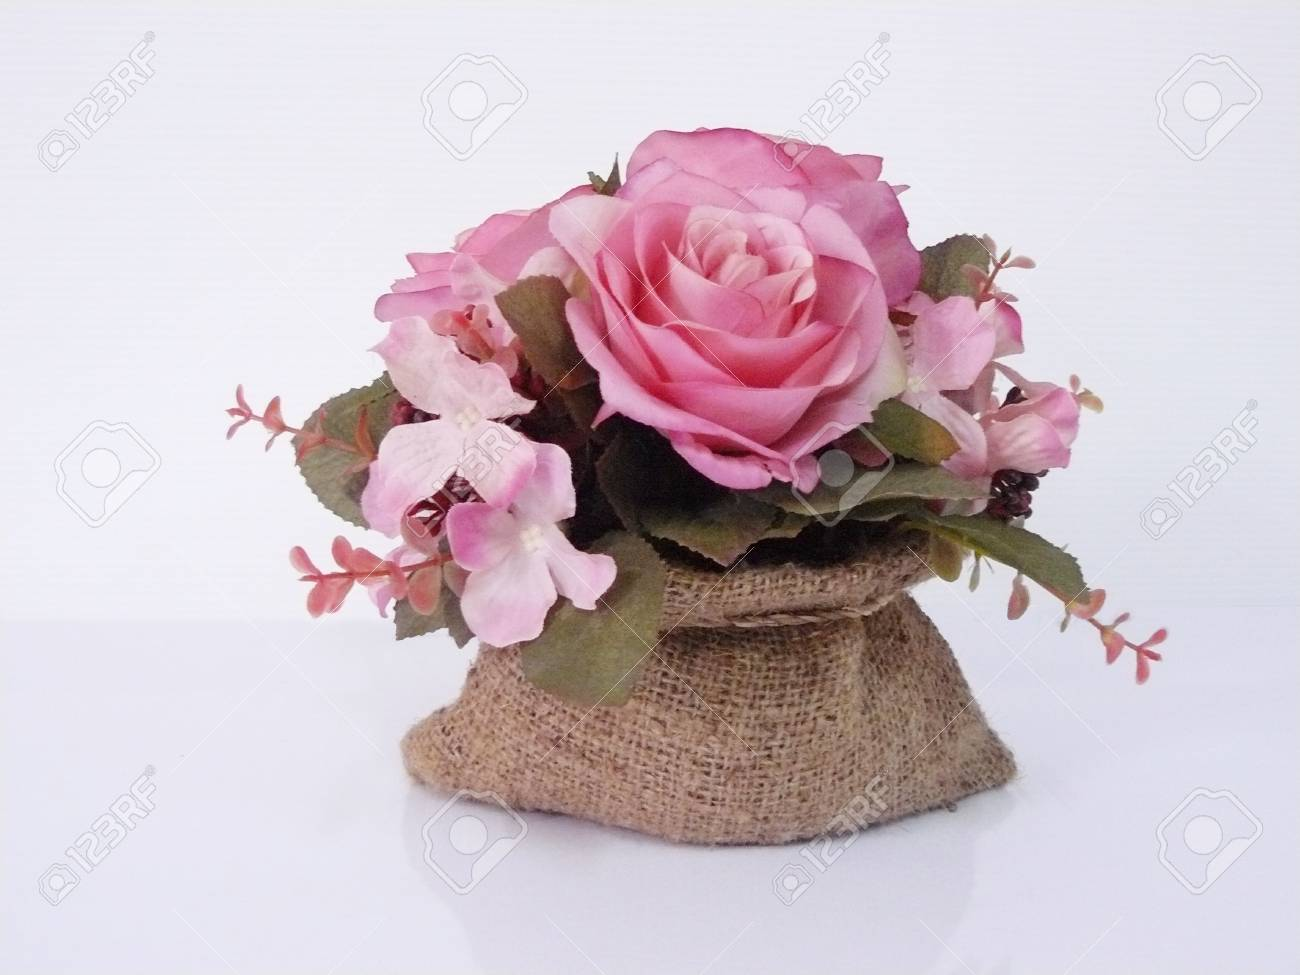 Vintage Pink Rose Of Cloth Artificial Flower Bouquet In Sack Stock